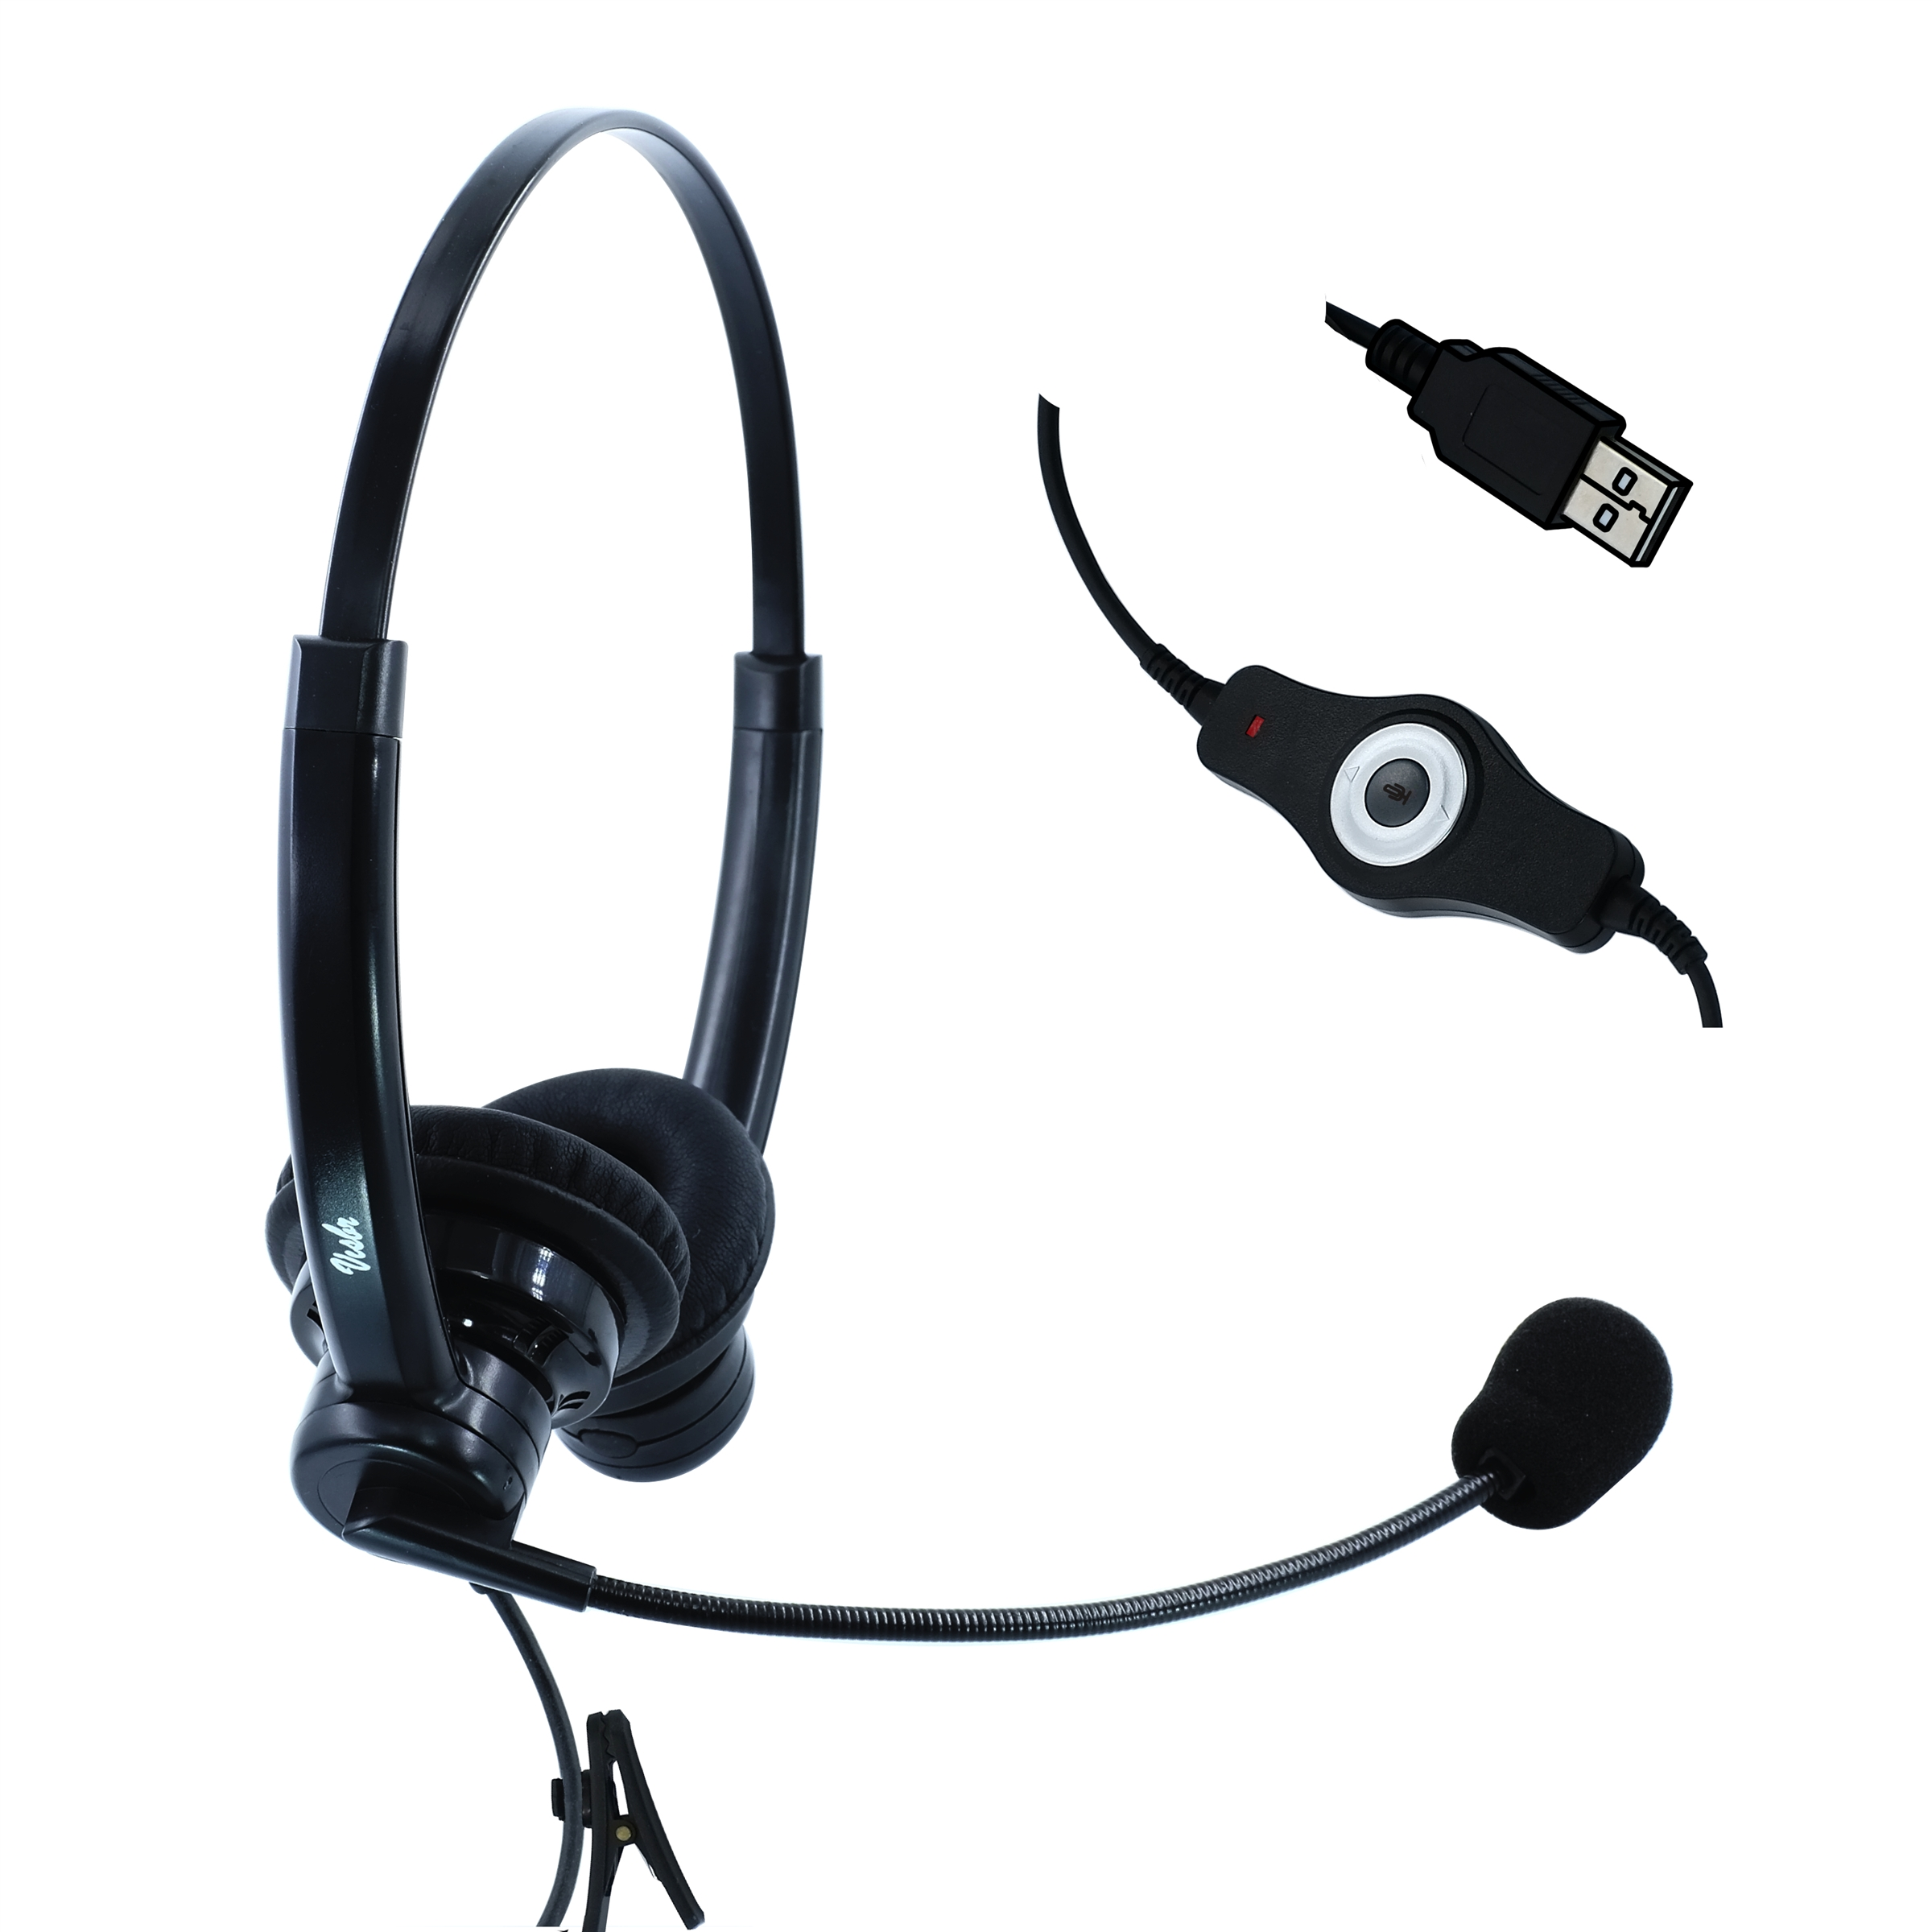 Visbr Usb Headset For Small Office And Work At Home